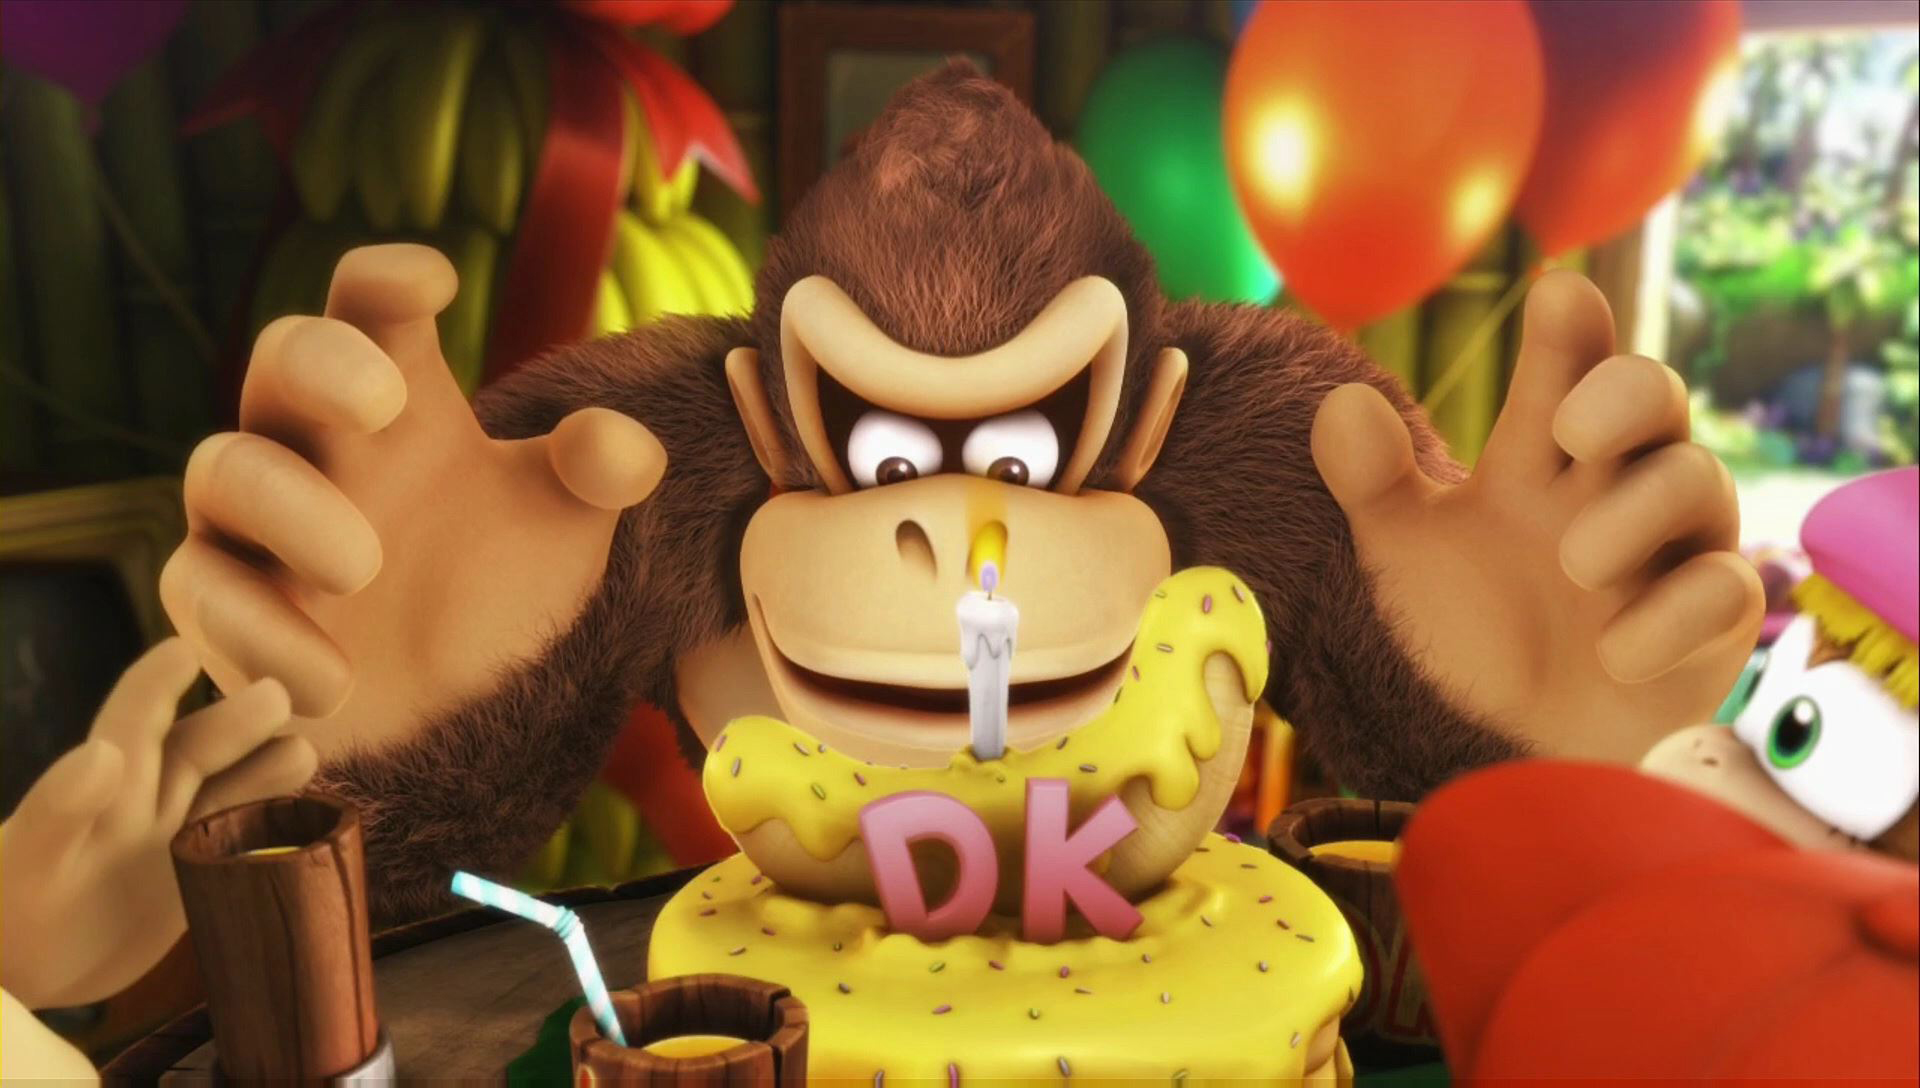 If Donkey Kong Were A Real Gorilla He Might Be Dead